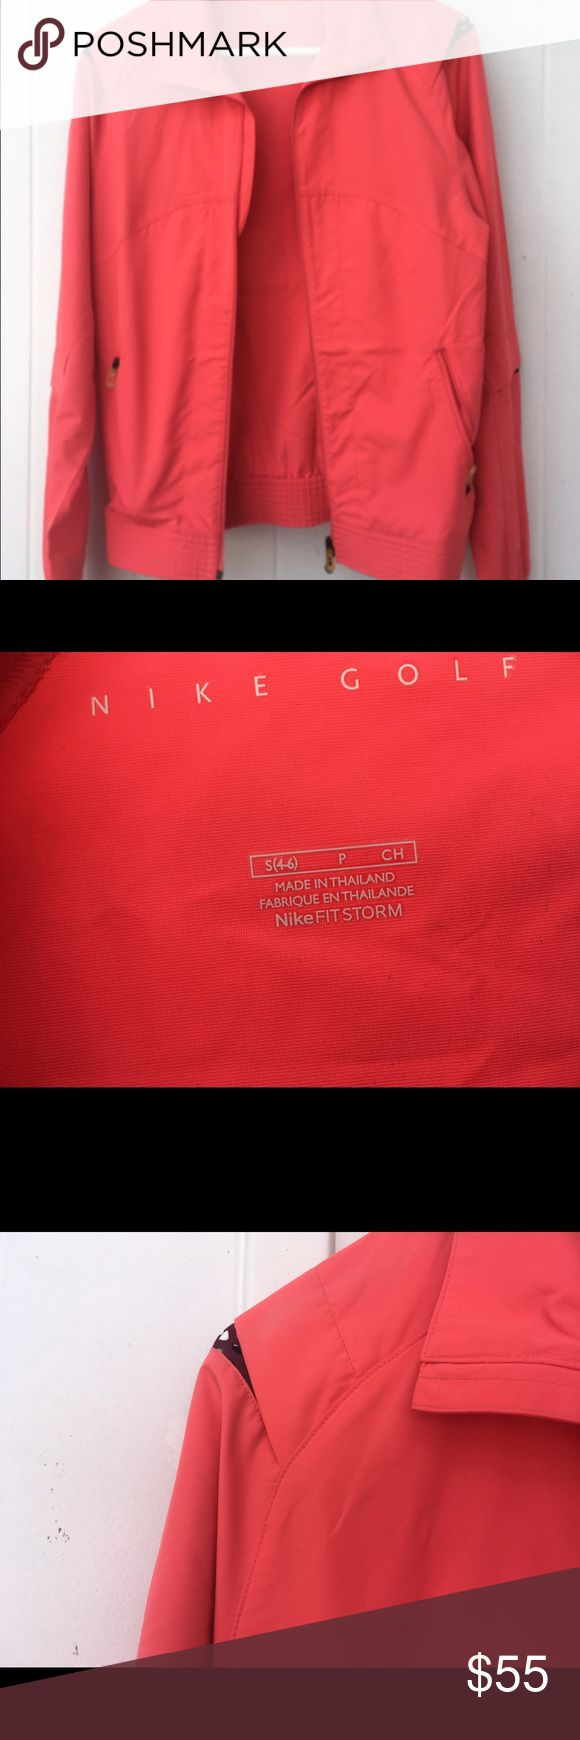 Woman's Nike Golf Jacket Woman's Nike golf jacket. In new condition. Worn only once. Size small. Waterproof Nike Jackets & Coats